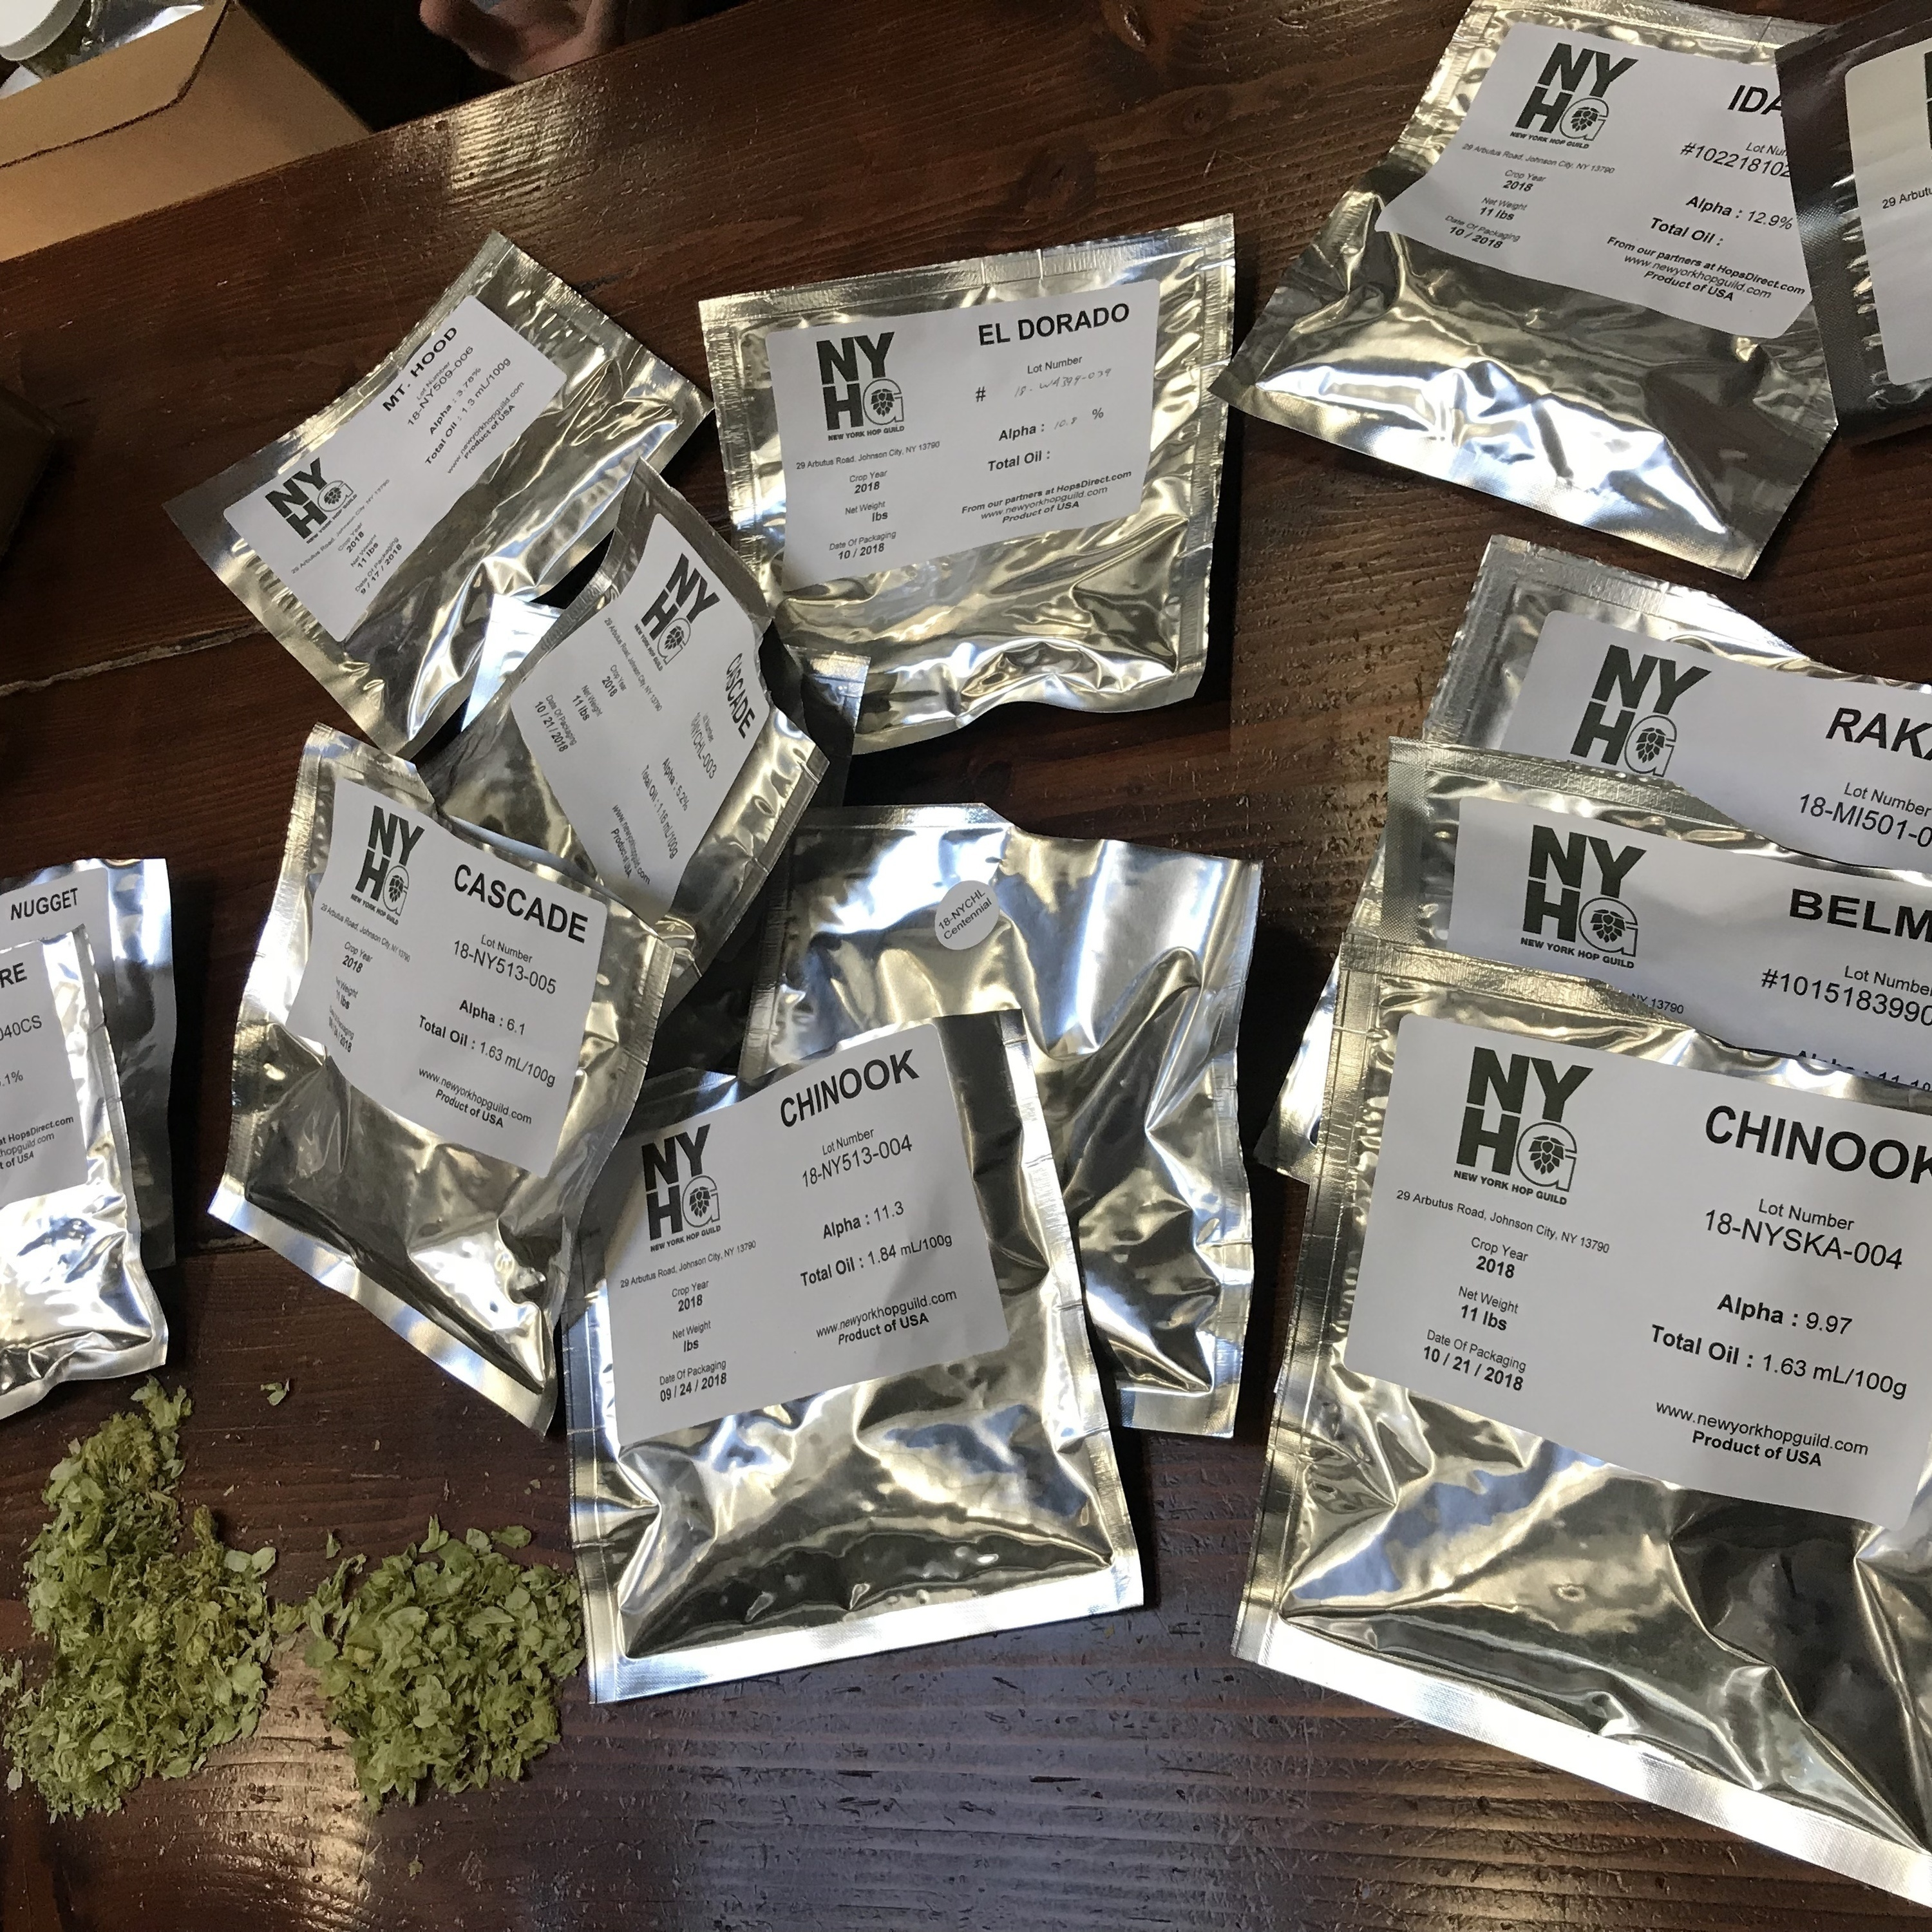 Episode 241: Hops in NY State and brewing in India!